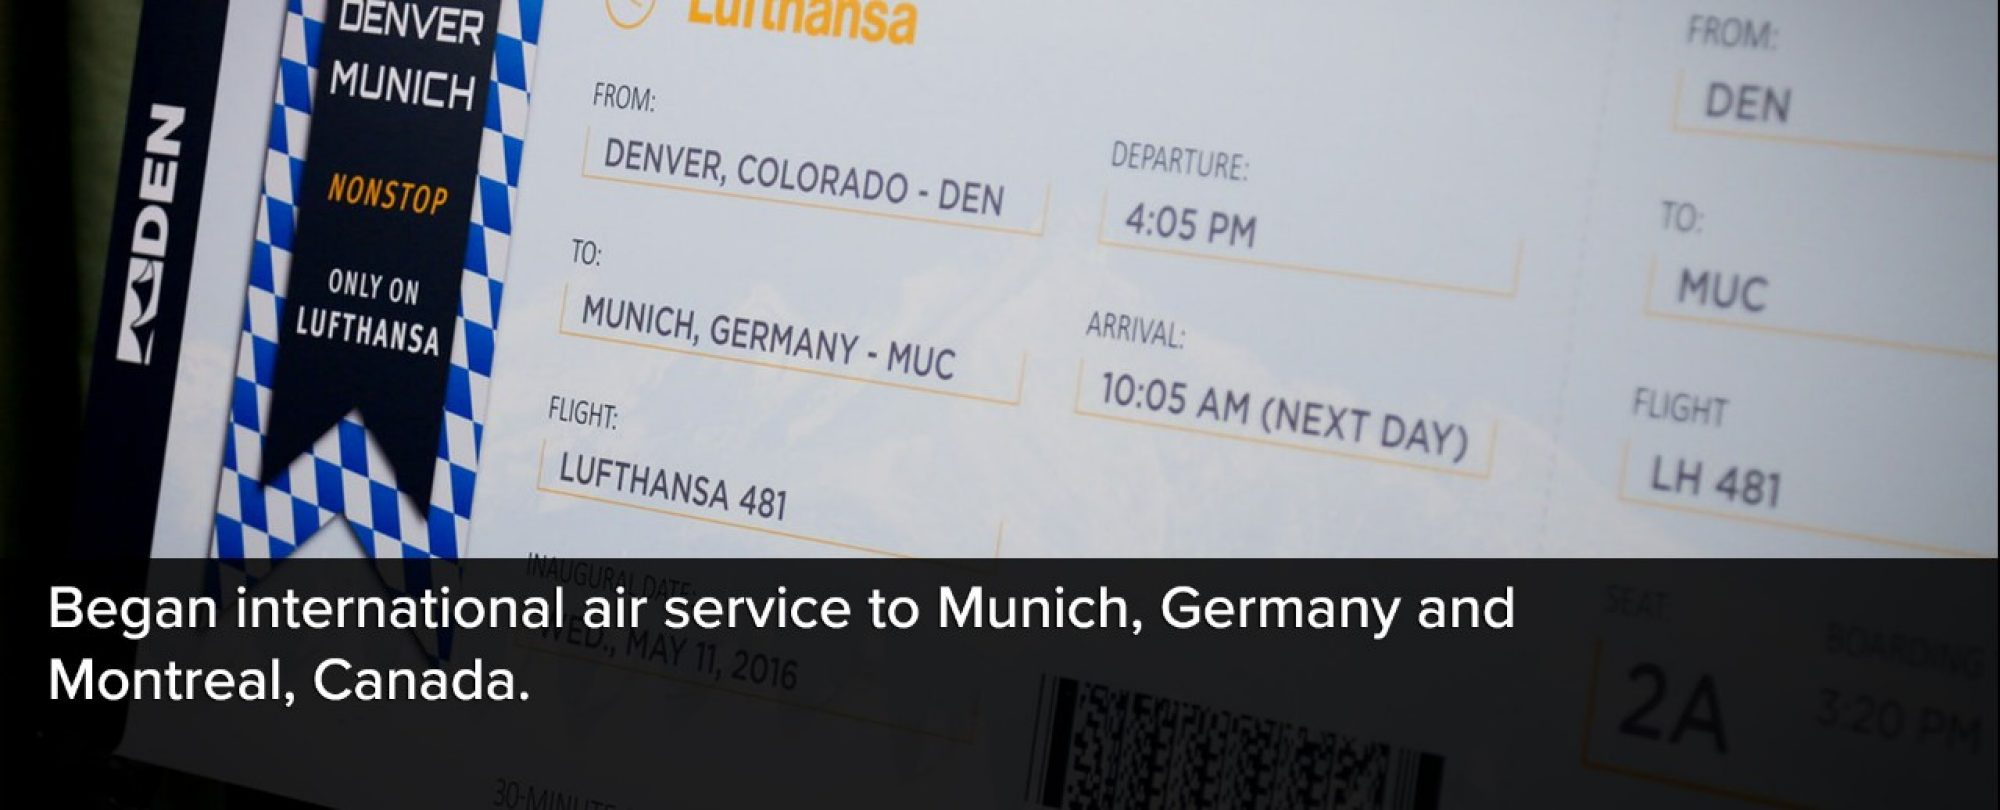 Photo of the Lufthansa booking screen showing a Denver to Munich, Germany travel itinerary. Denver International Airport began international air service to Munich, Germany and Montreal, Canada.